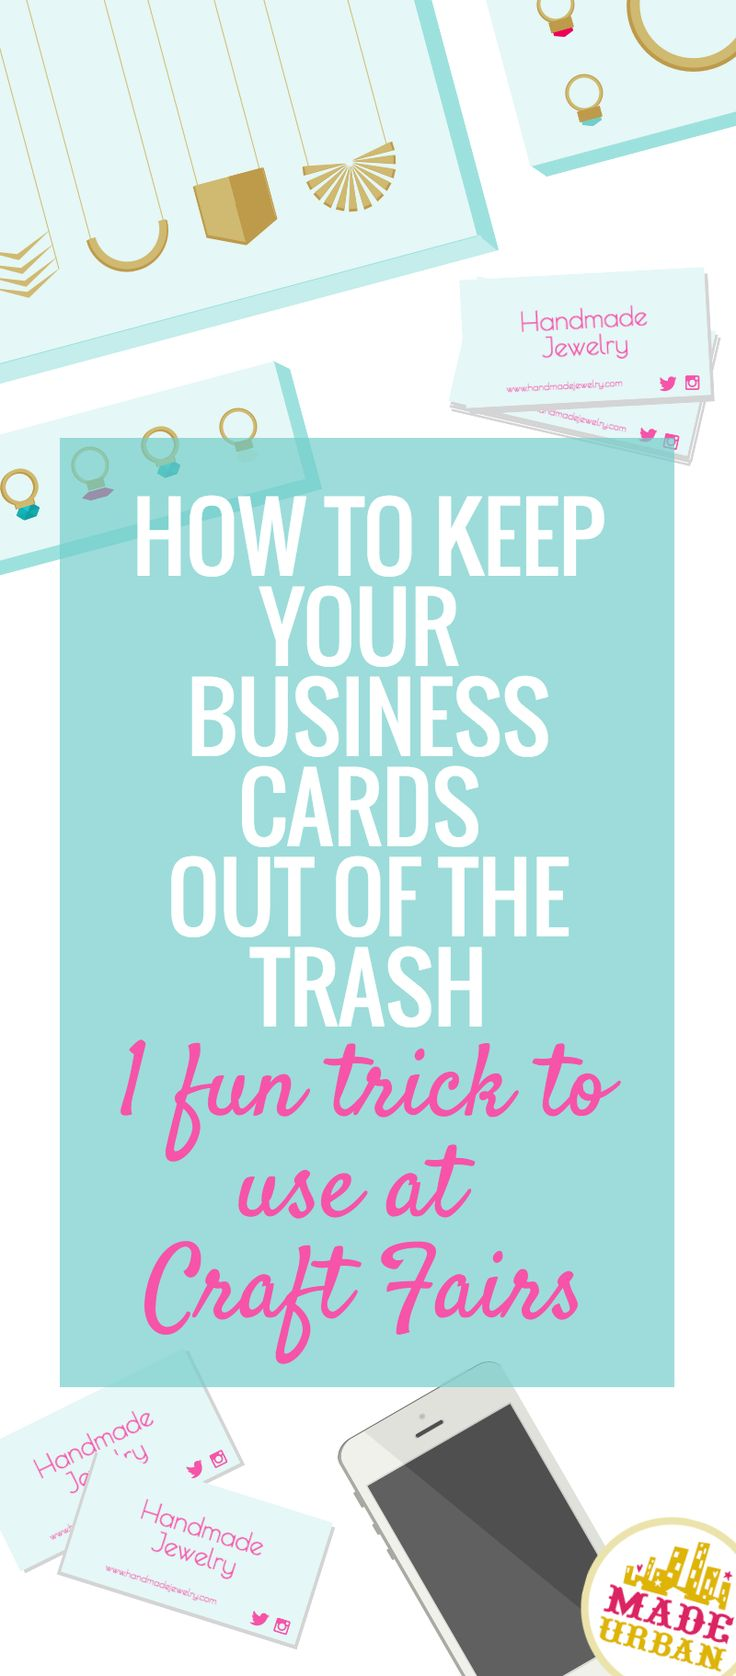 100 best business inspirations images on pinterest blogging how to keep your business cards out of the trash colourmoves